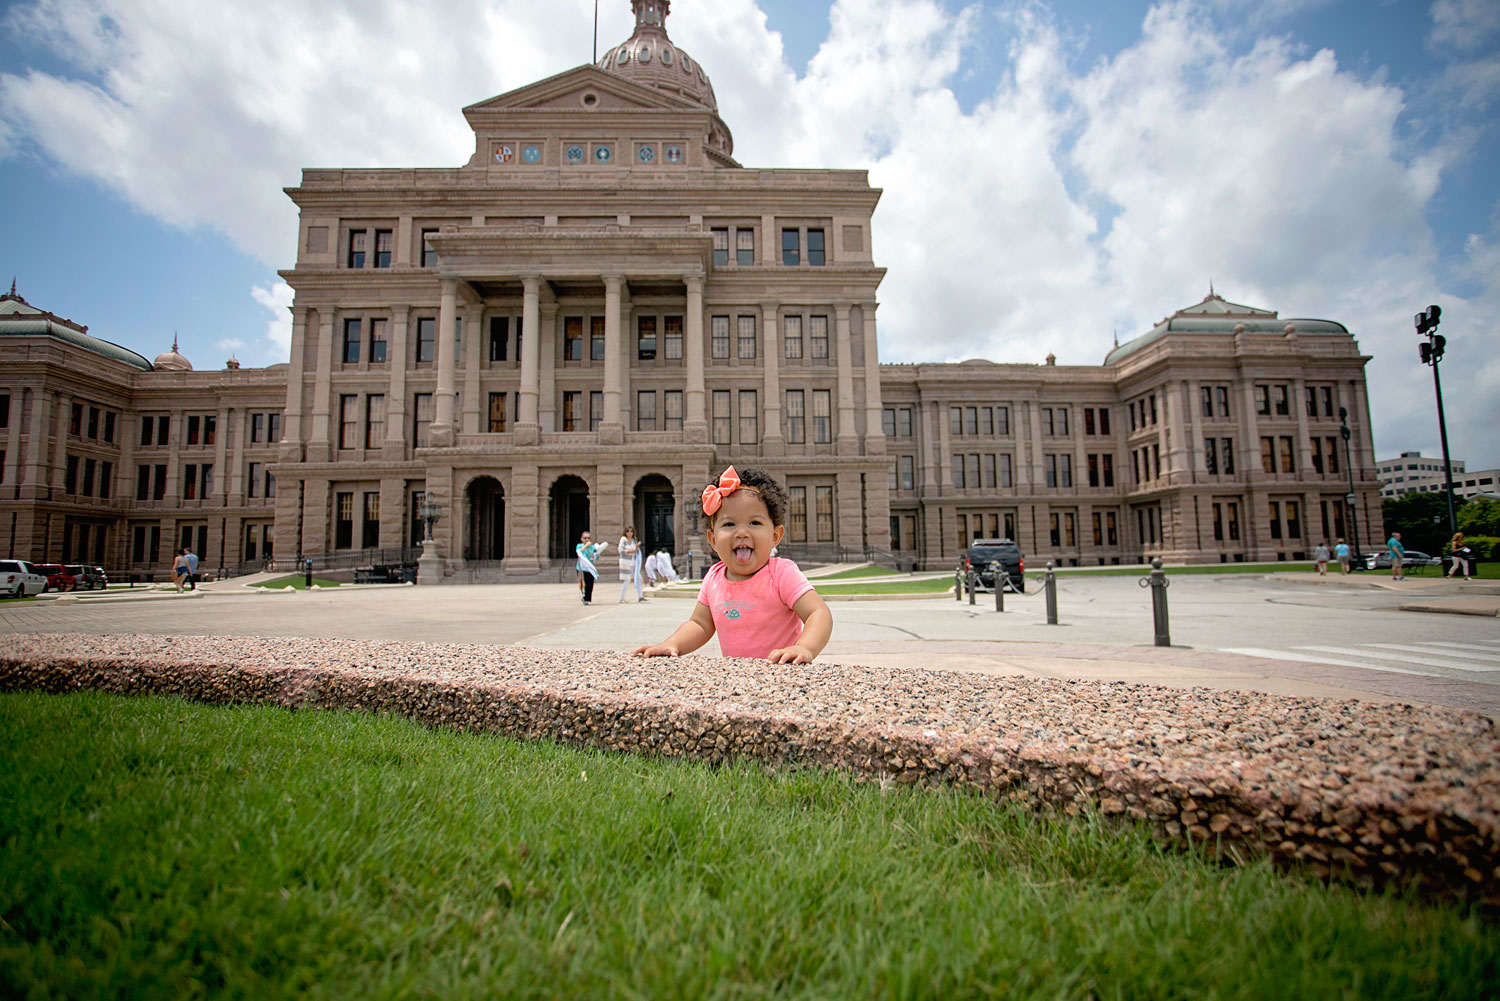 Biracial baby standing in front of the Texas state capitol building.